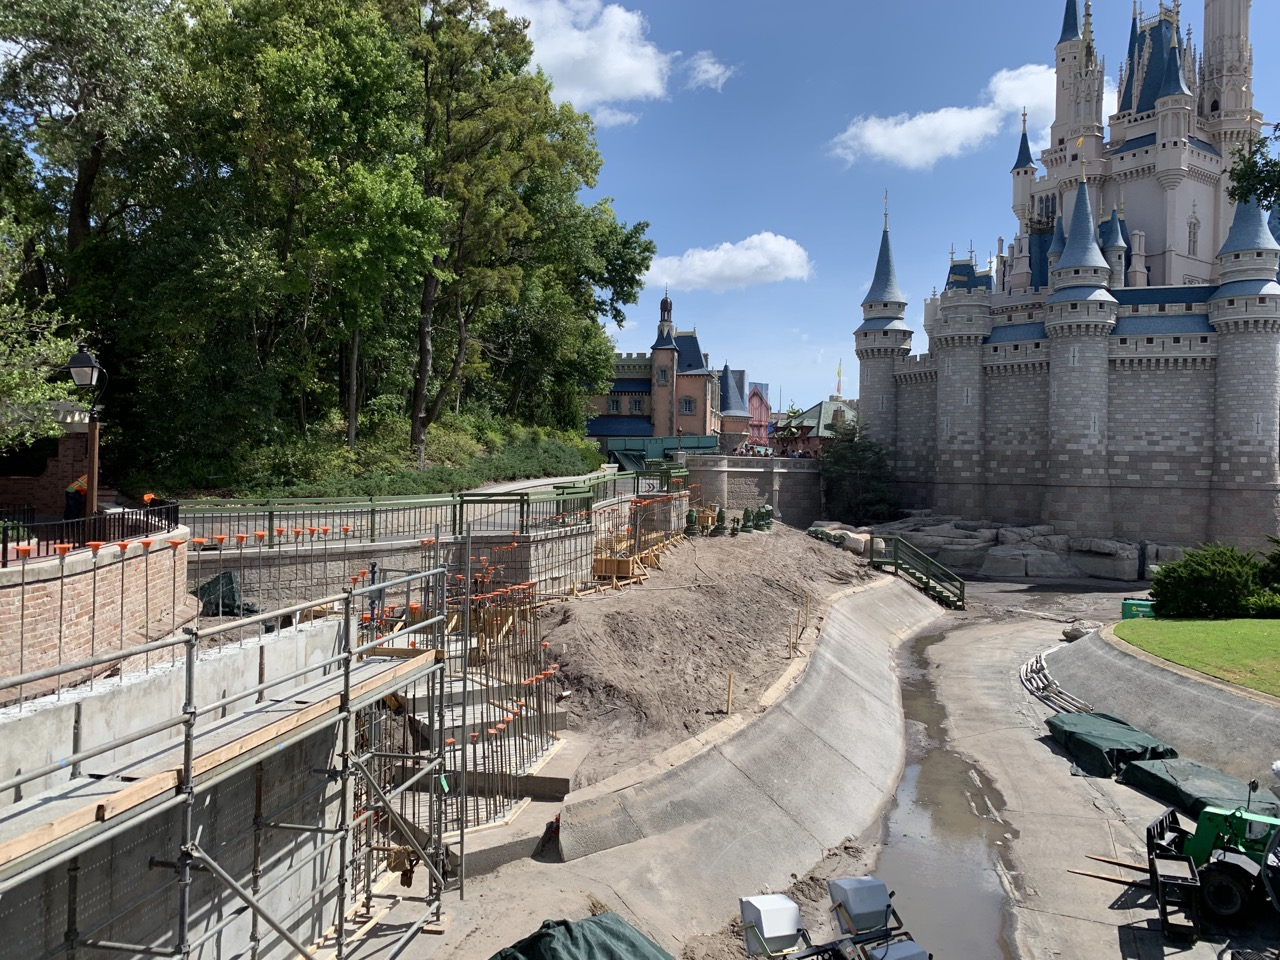 disney world trip report early summer 2019 day five construction 1.jpeg